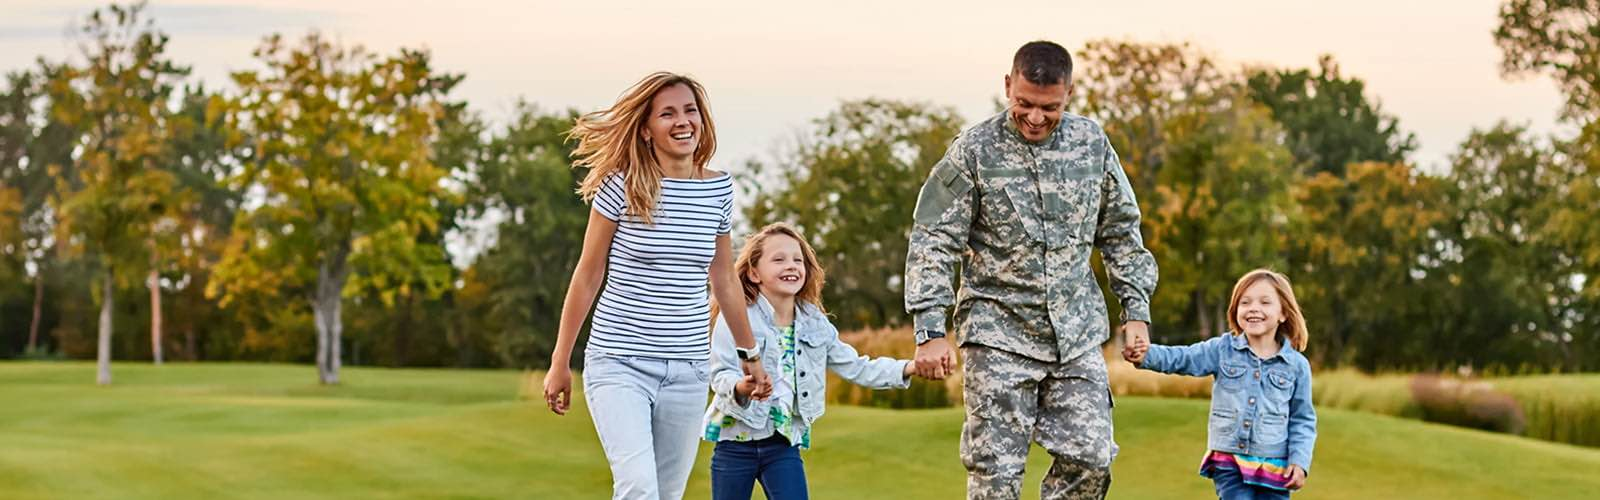 Military serviceman with family in park